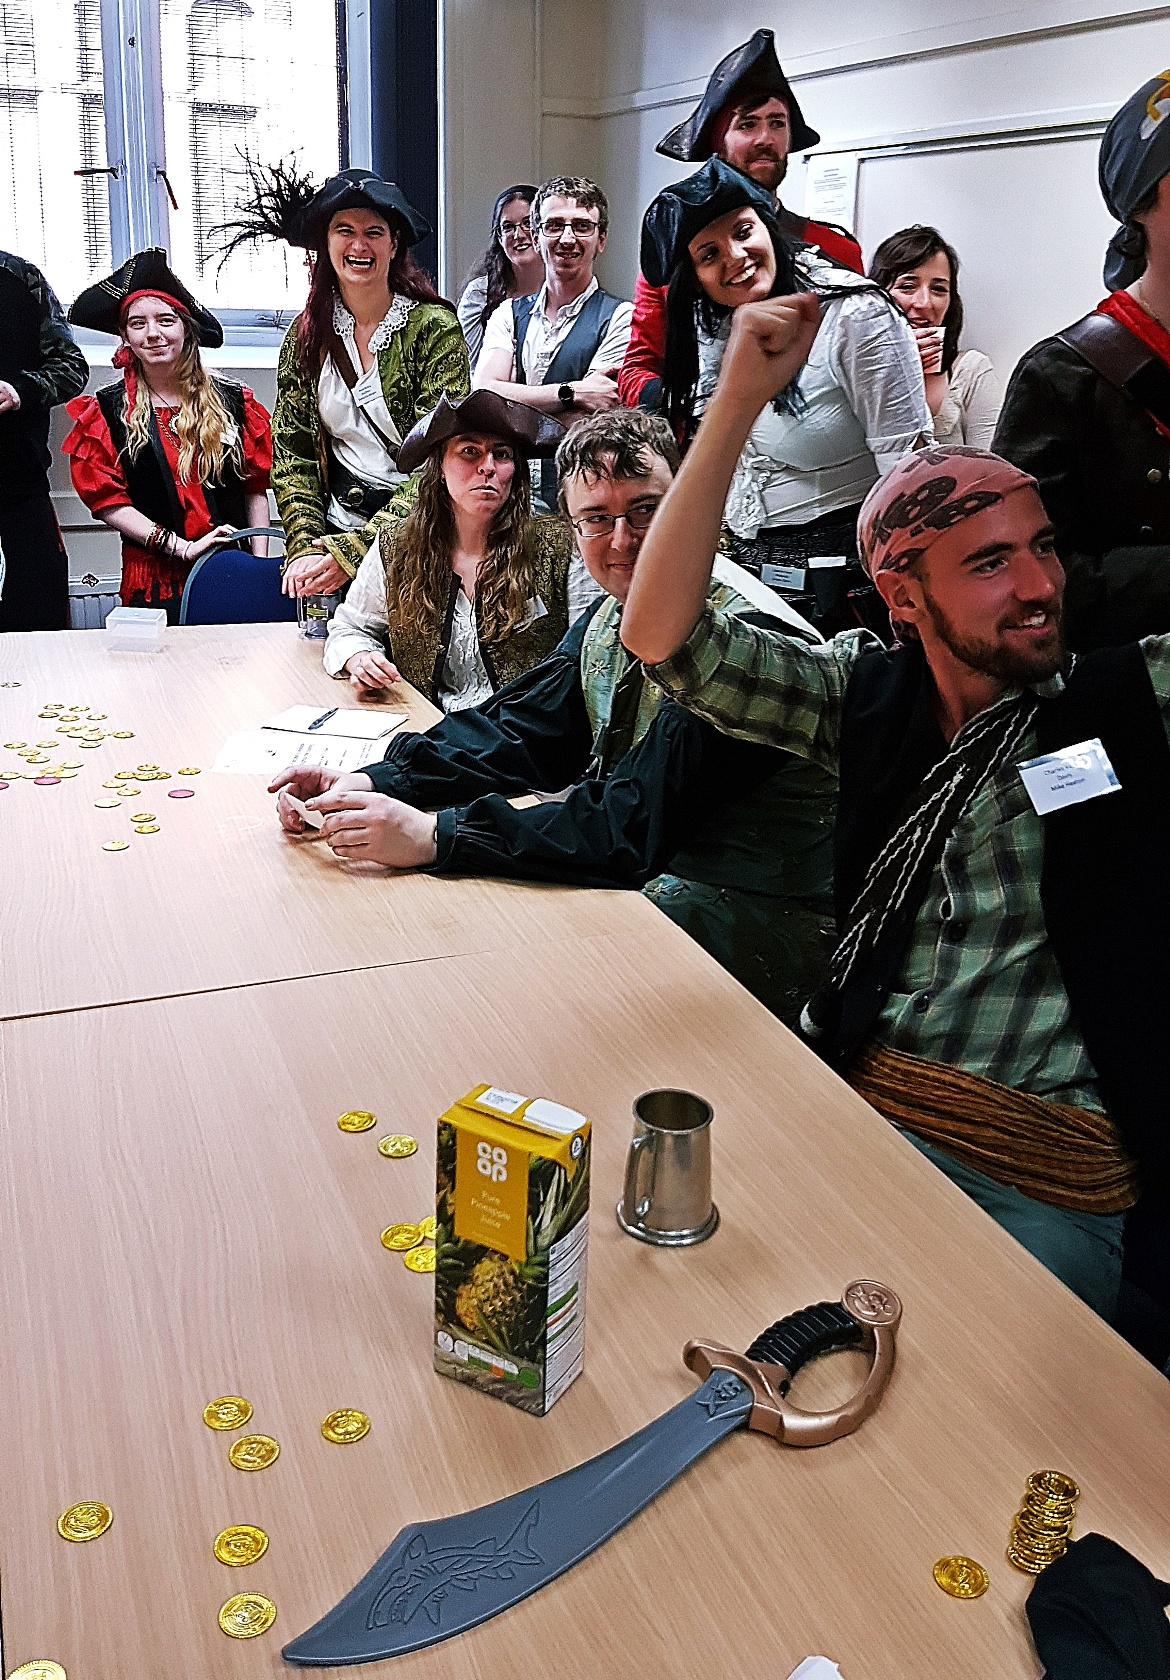 A council meeting - The Pirate Republic Megagame After Action Report by BeckyBecky Blogs